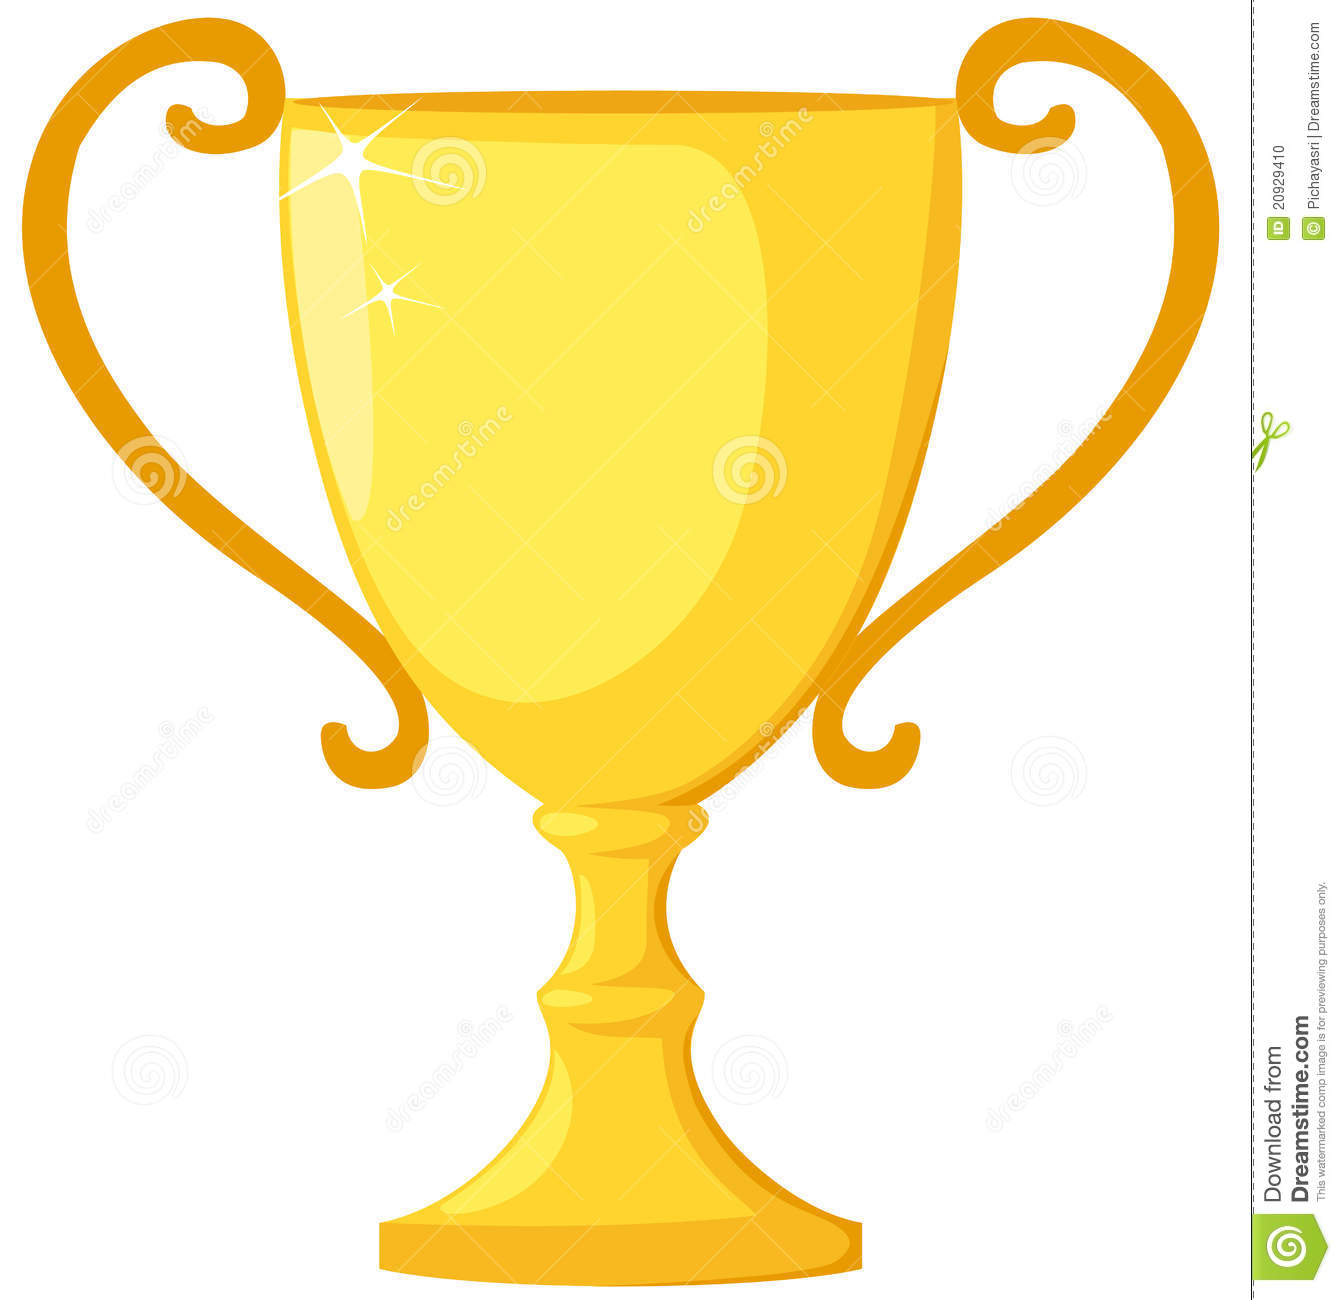 Number 1 trophy clipart clipart royalty free download A trophy clipart - ClipartFest clipart royalty free download